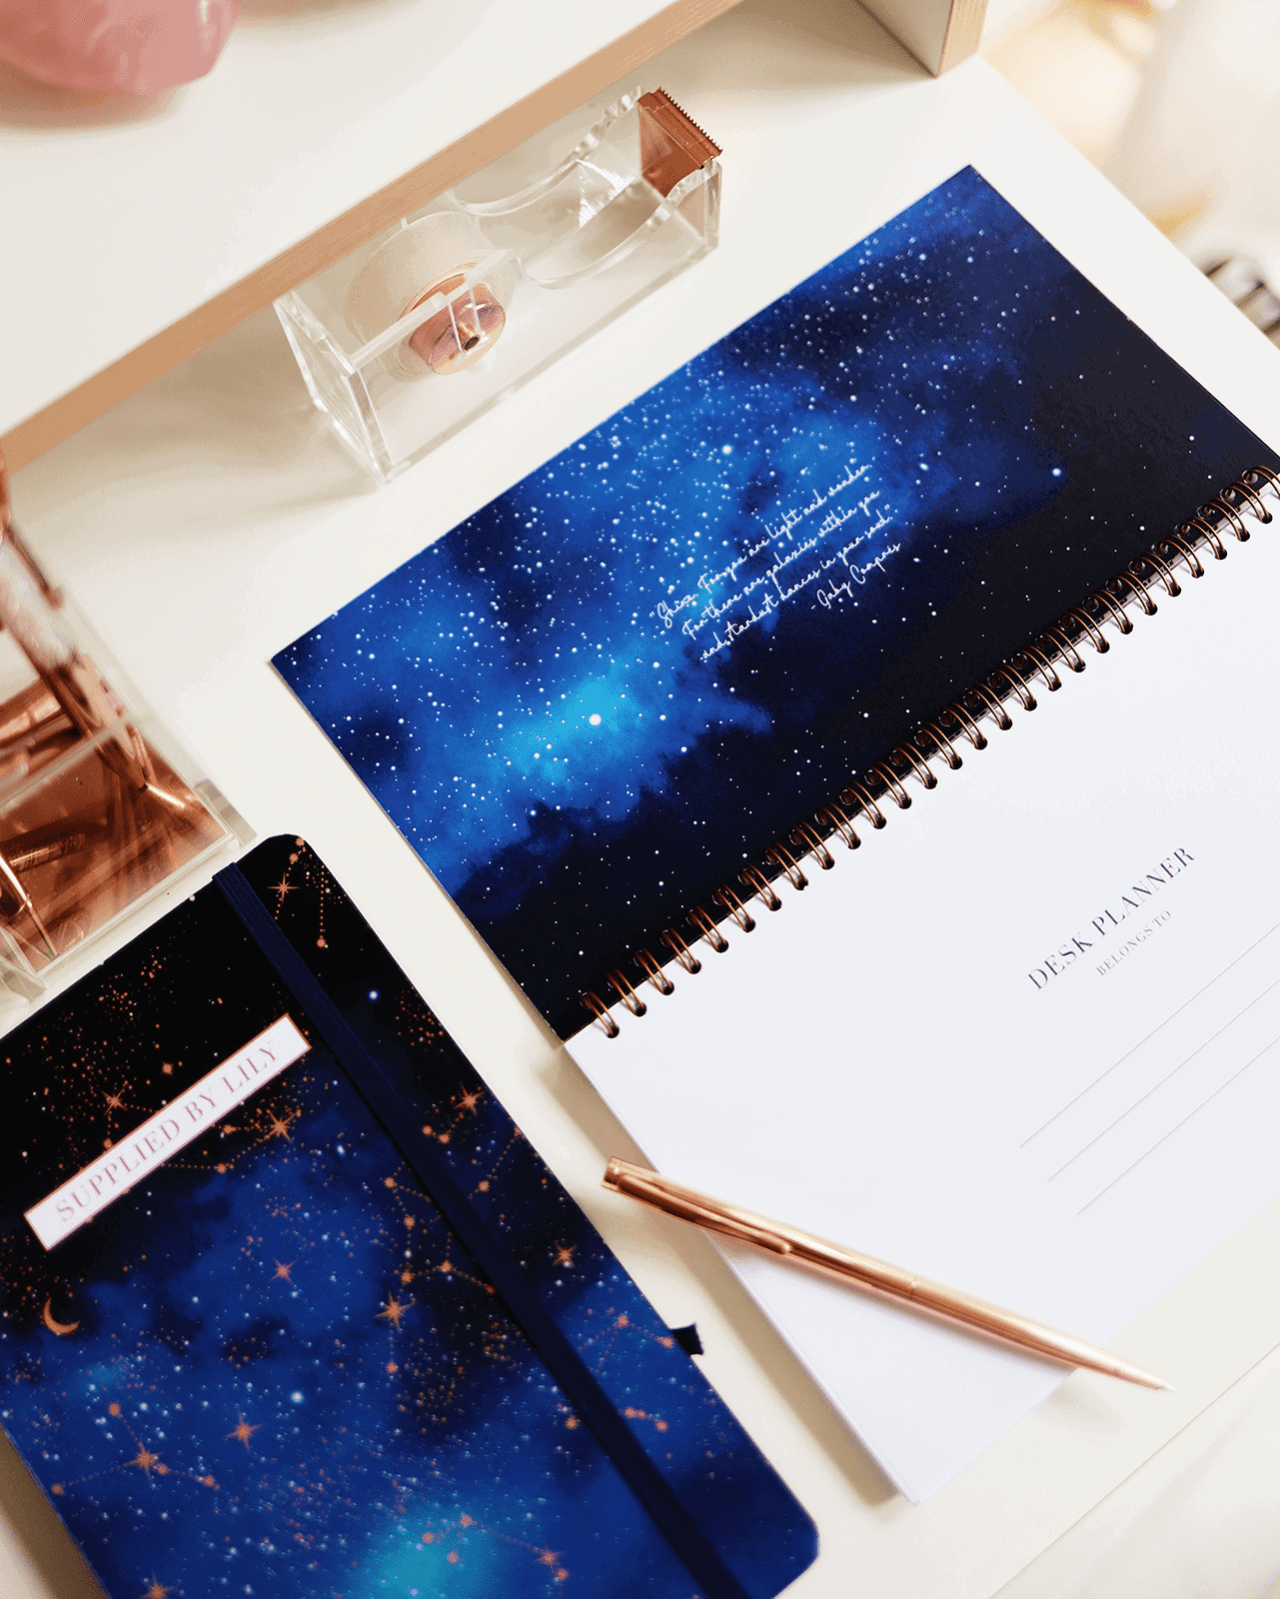 Supplied by Lily Desk Planner in Luxurious Astrology